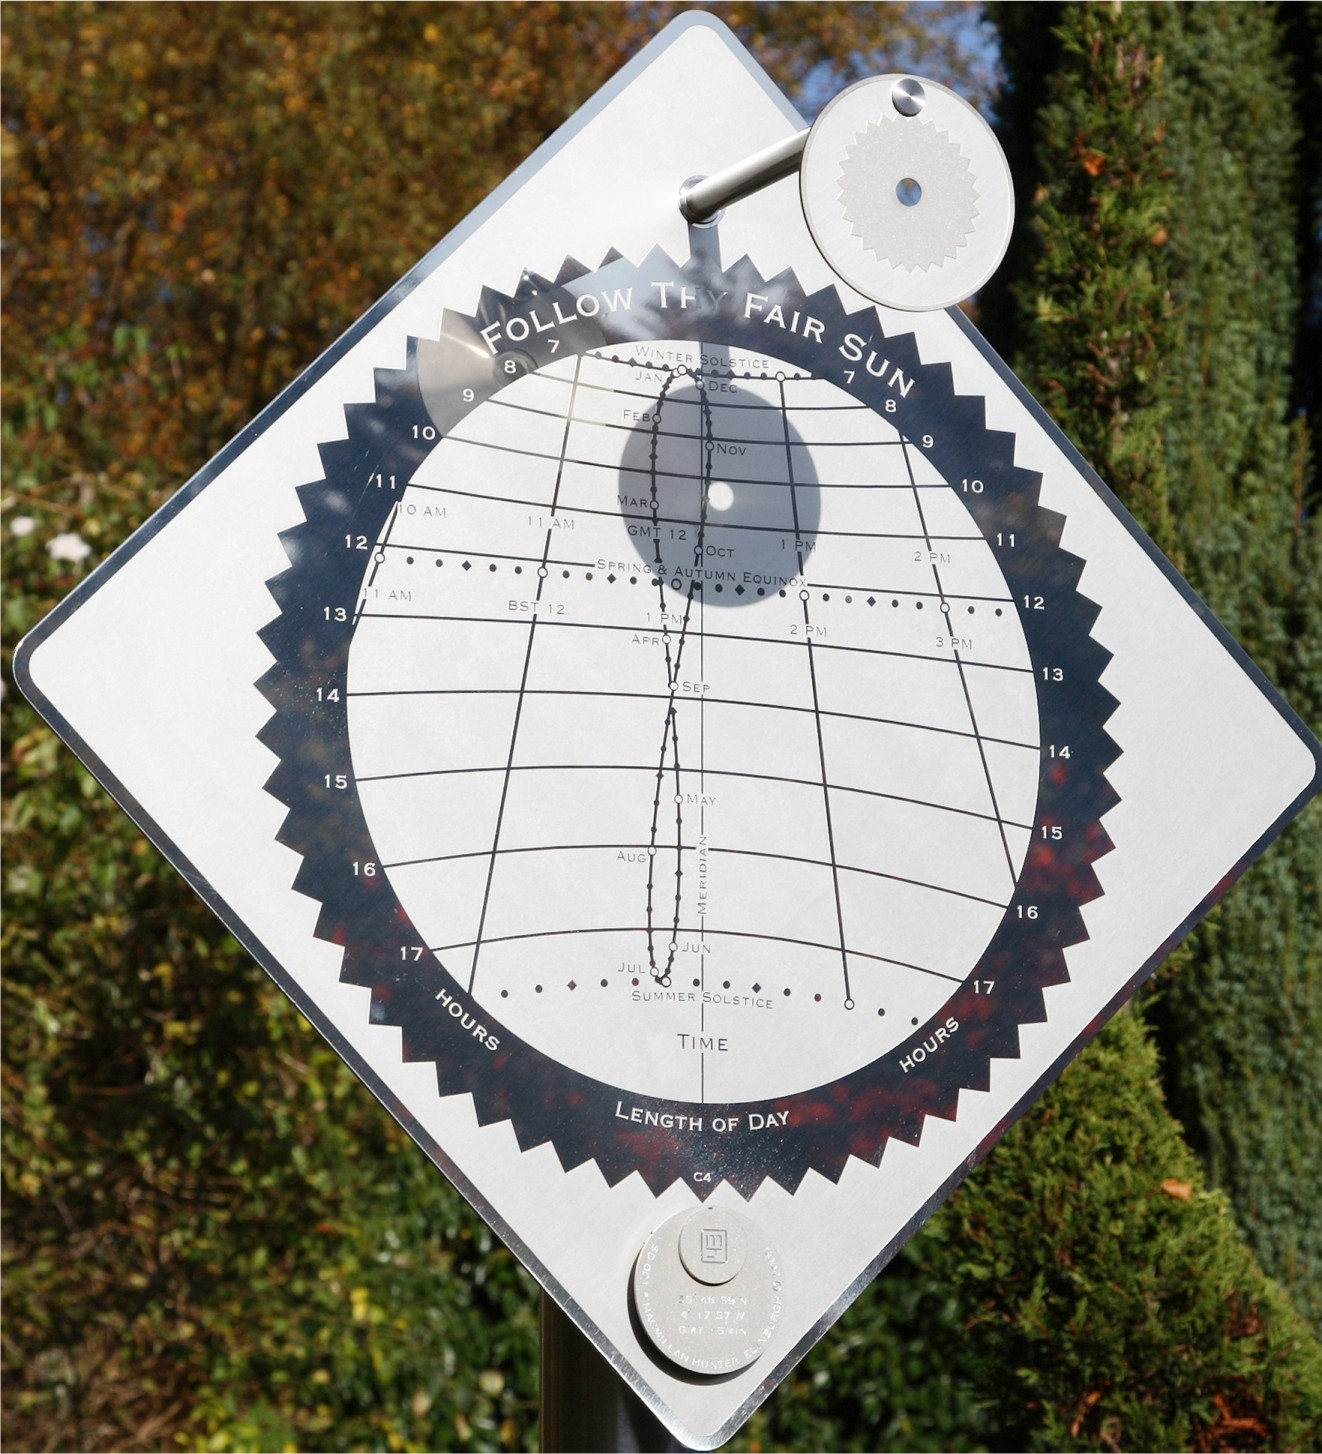 Solar Time I sundial inspired by yearly cycle of earth and sun